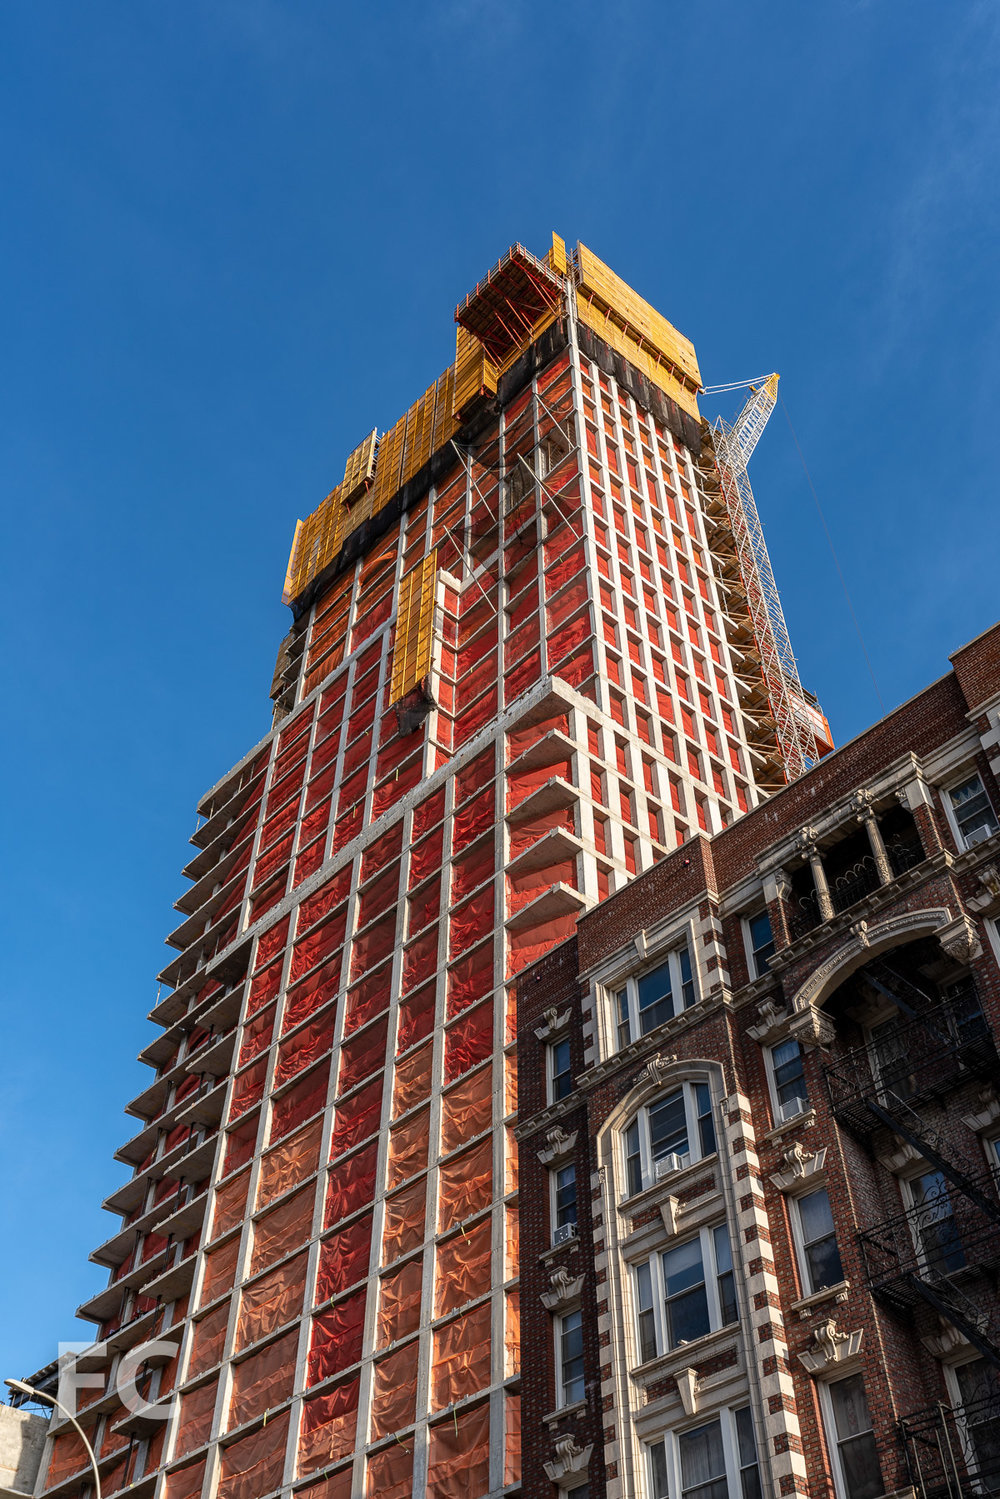 Looking up at the southeast corner from West 122nd Street.